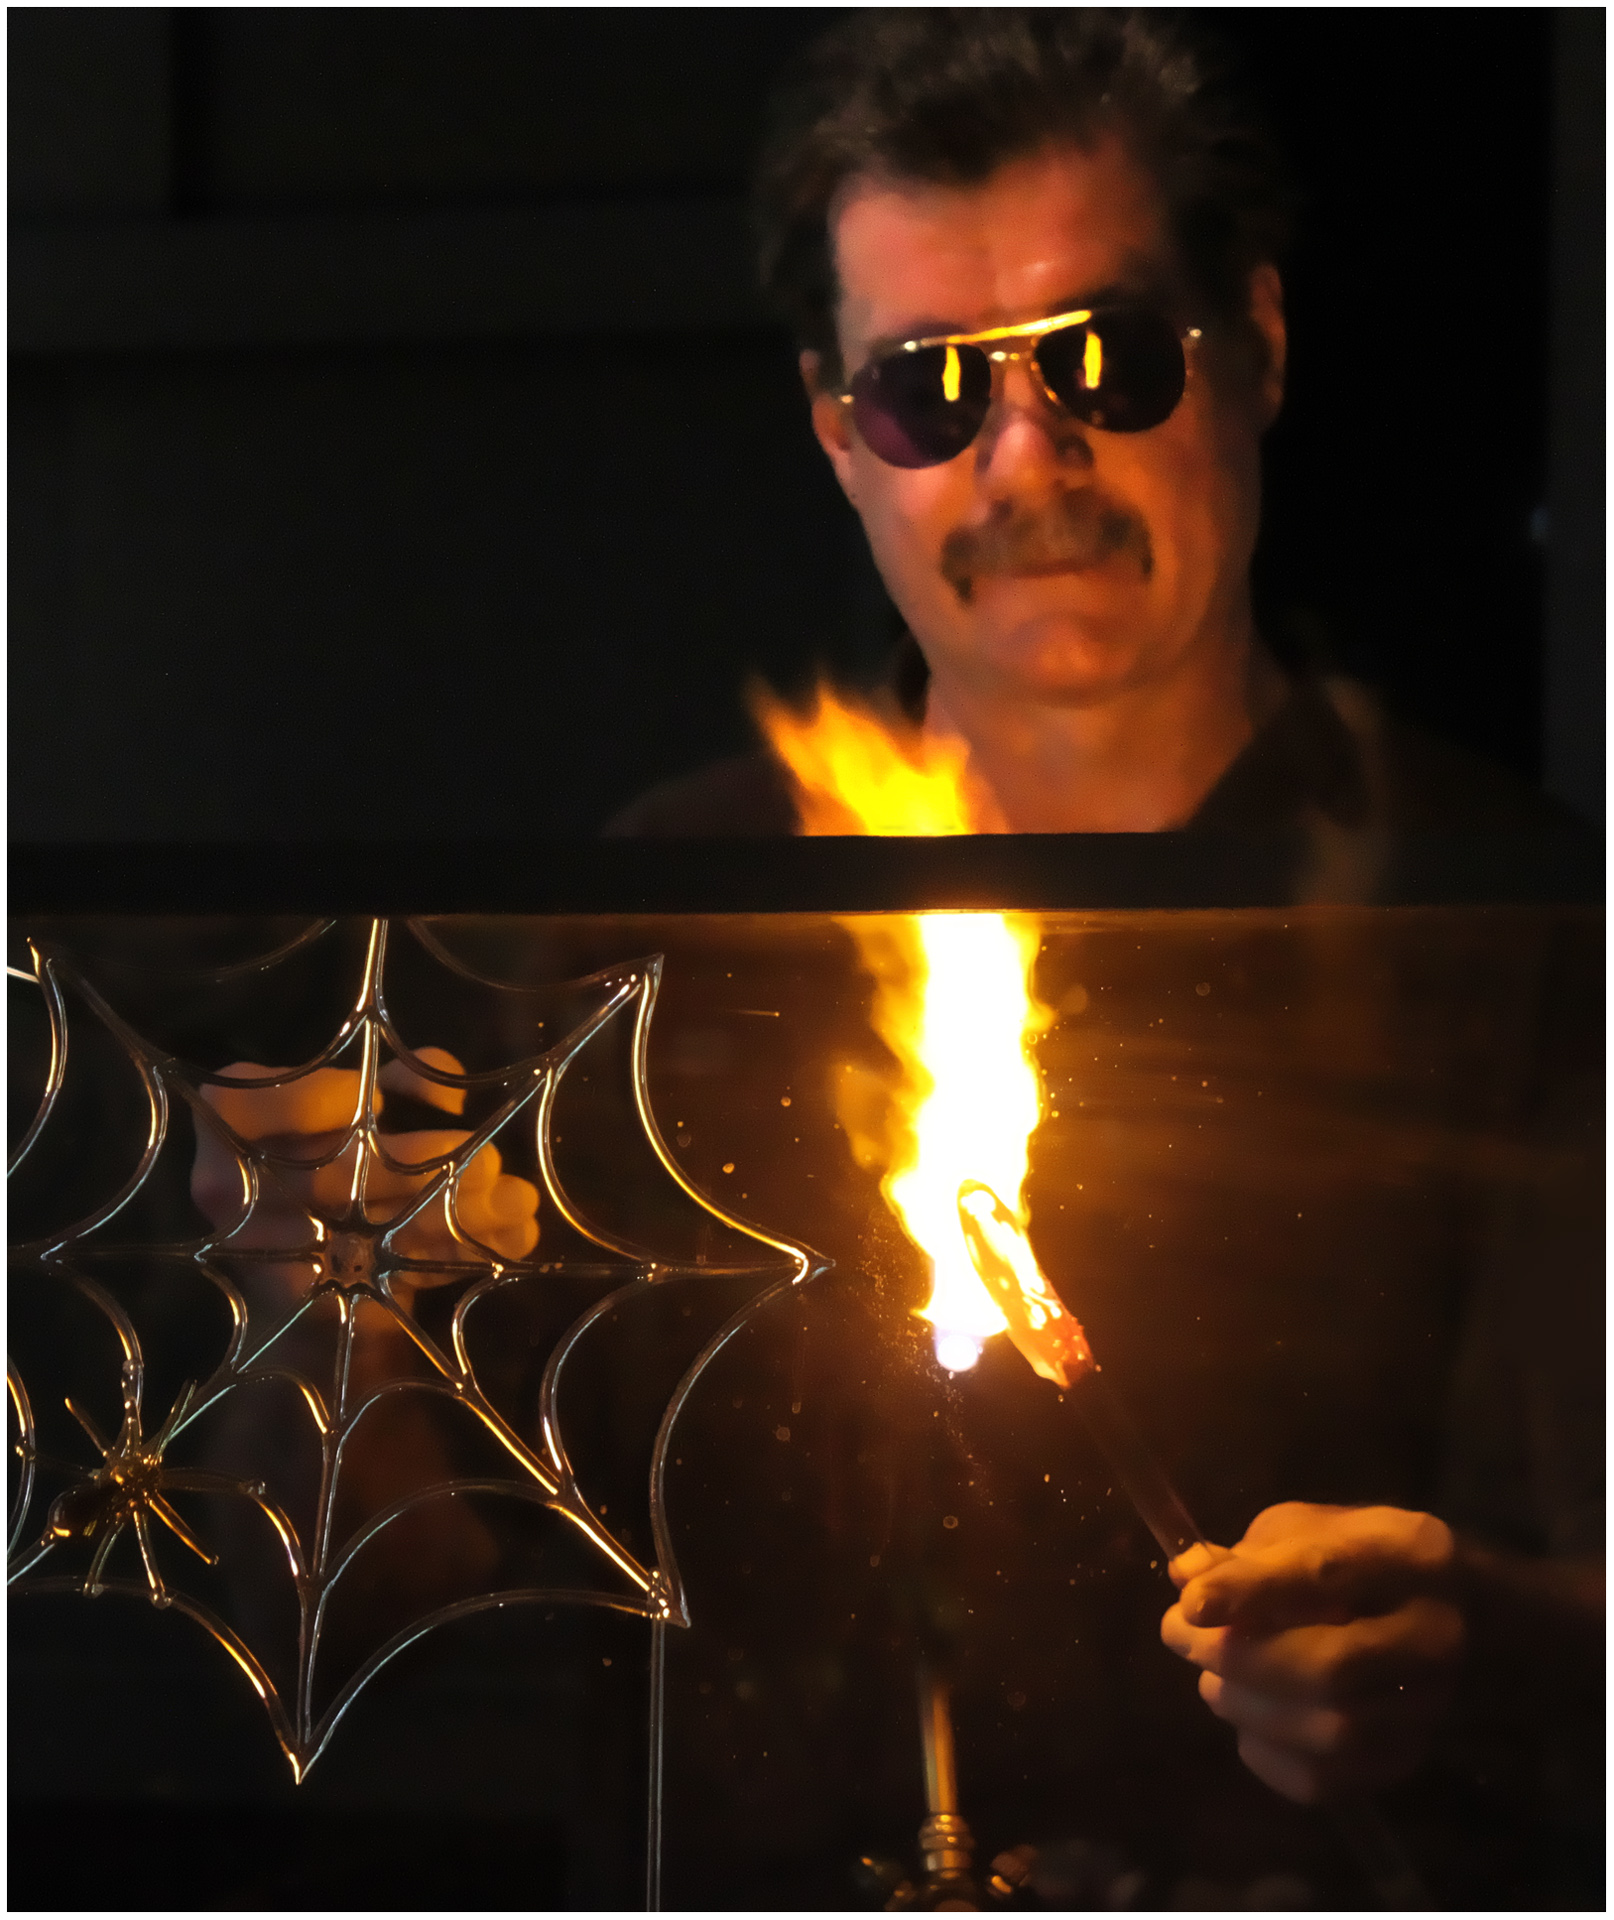 Glassblower - Digital (Shallow Depth of Field) - Name Withheld Per Request